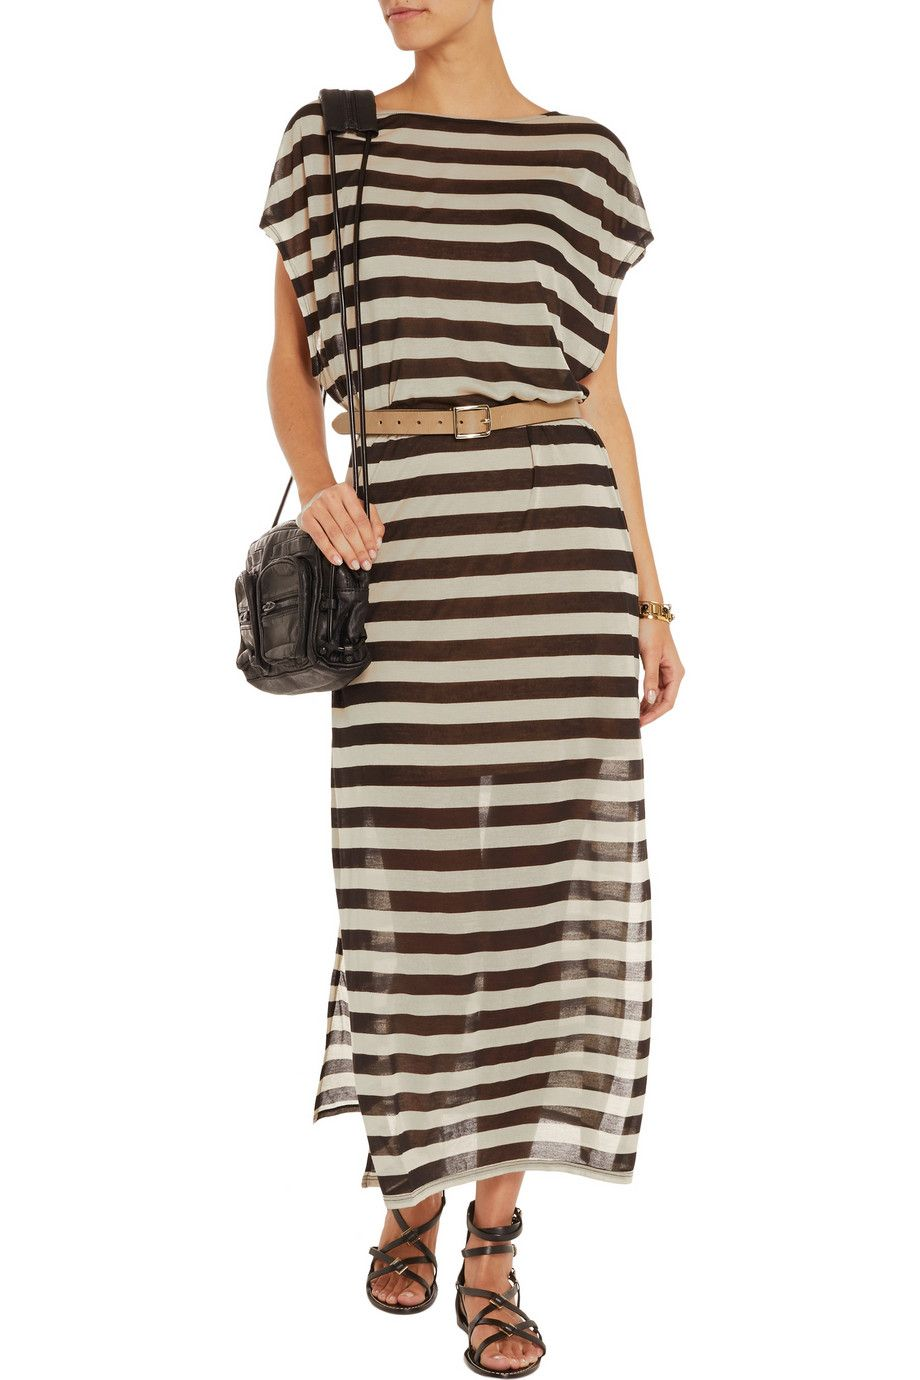 Shimmered silk maxi dress by maison scotch pants